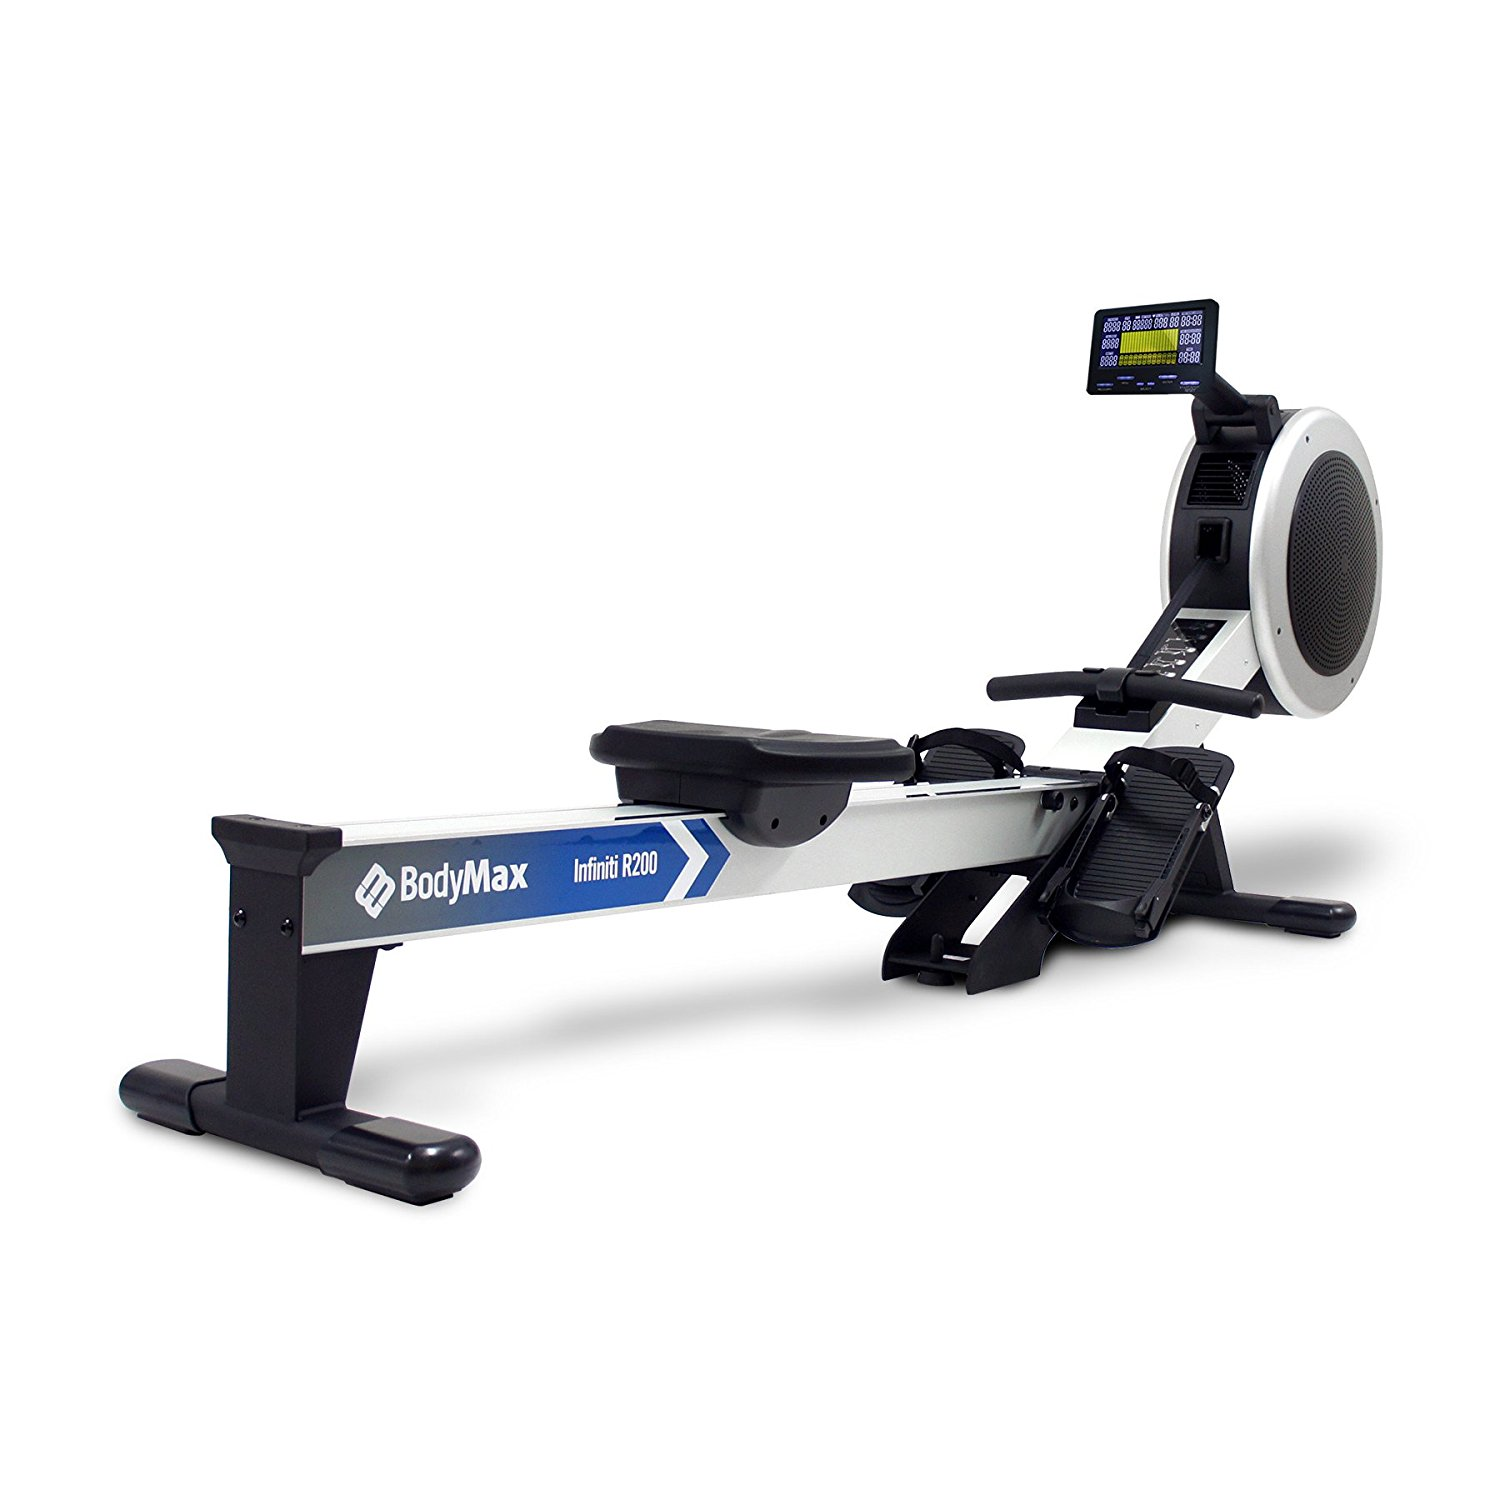 Bodymax Infiniti R200 Rowing Machine Review - Rowing Fan Club